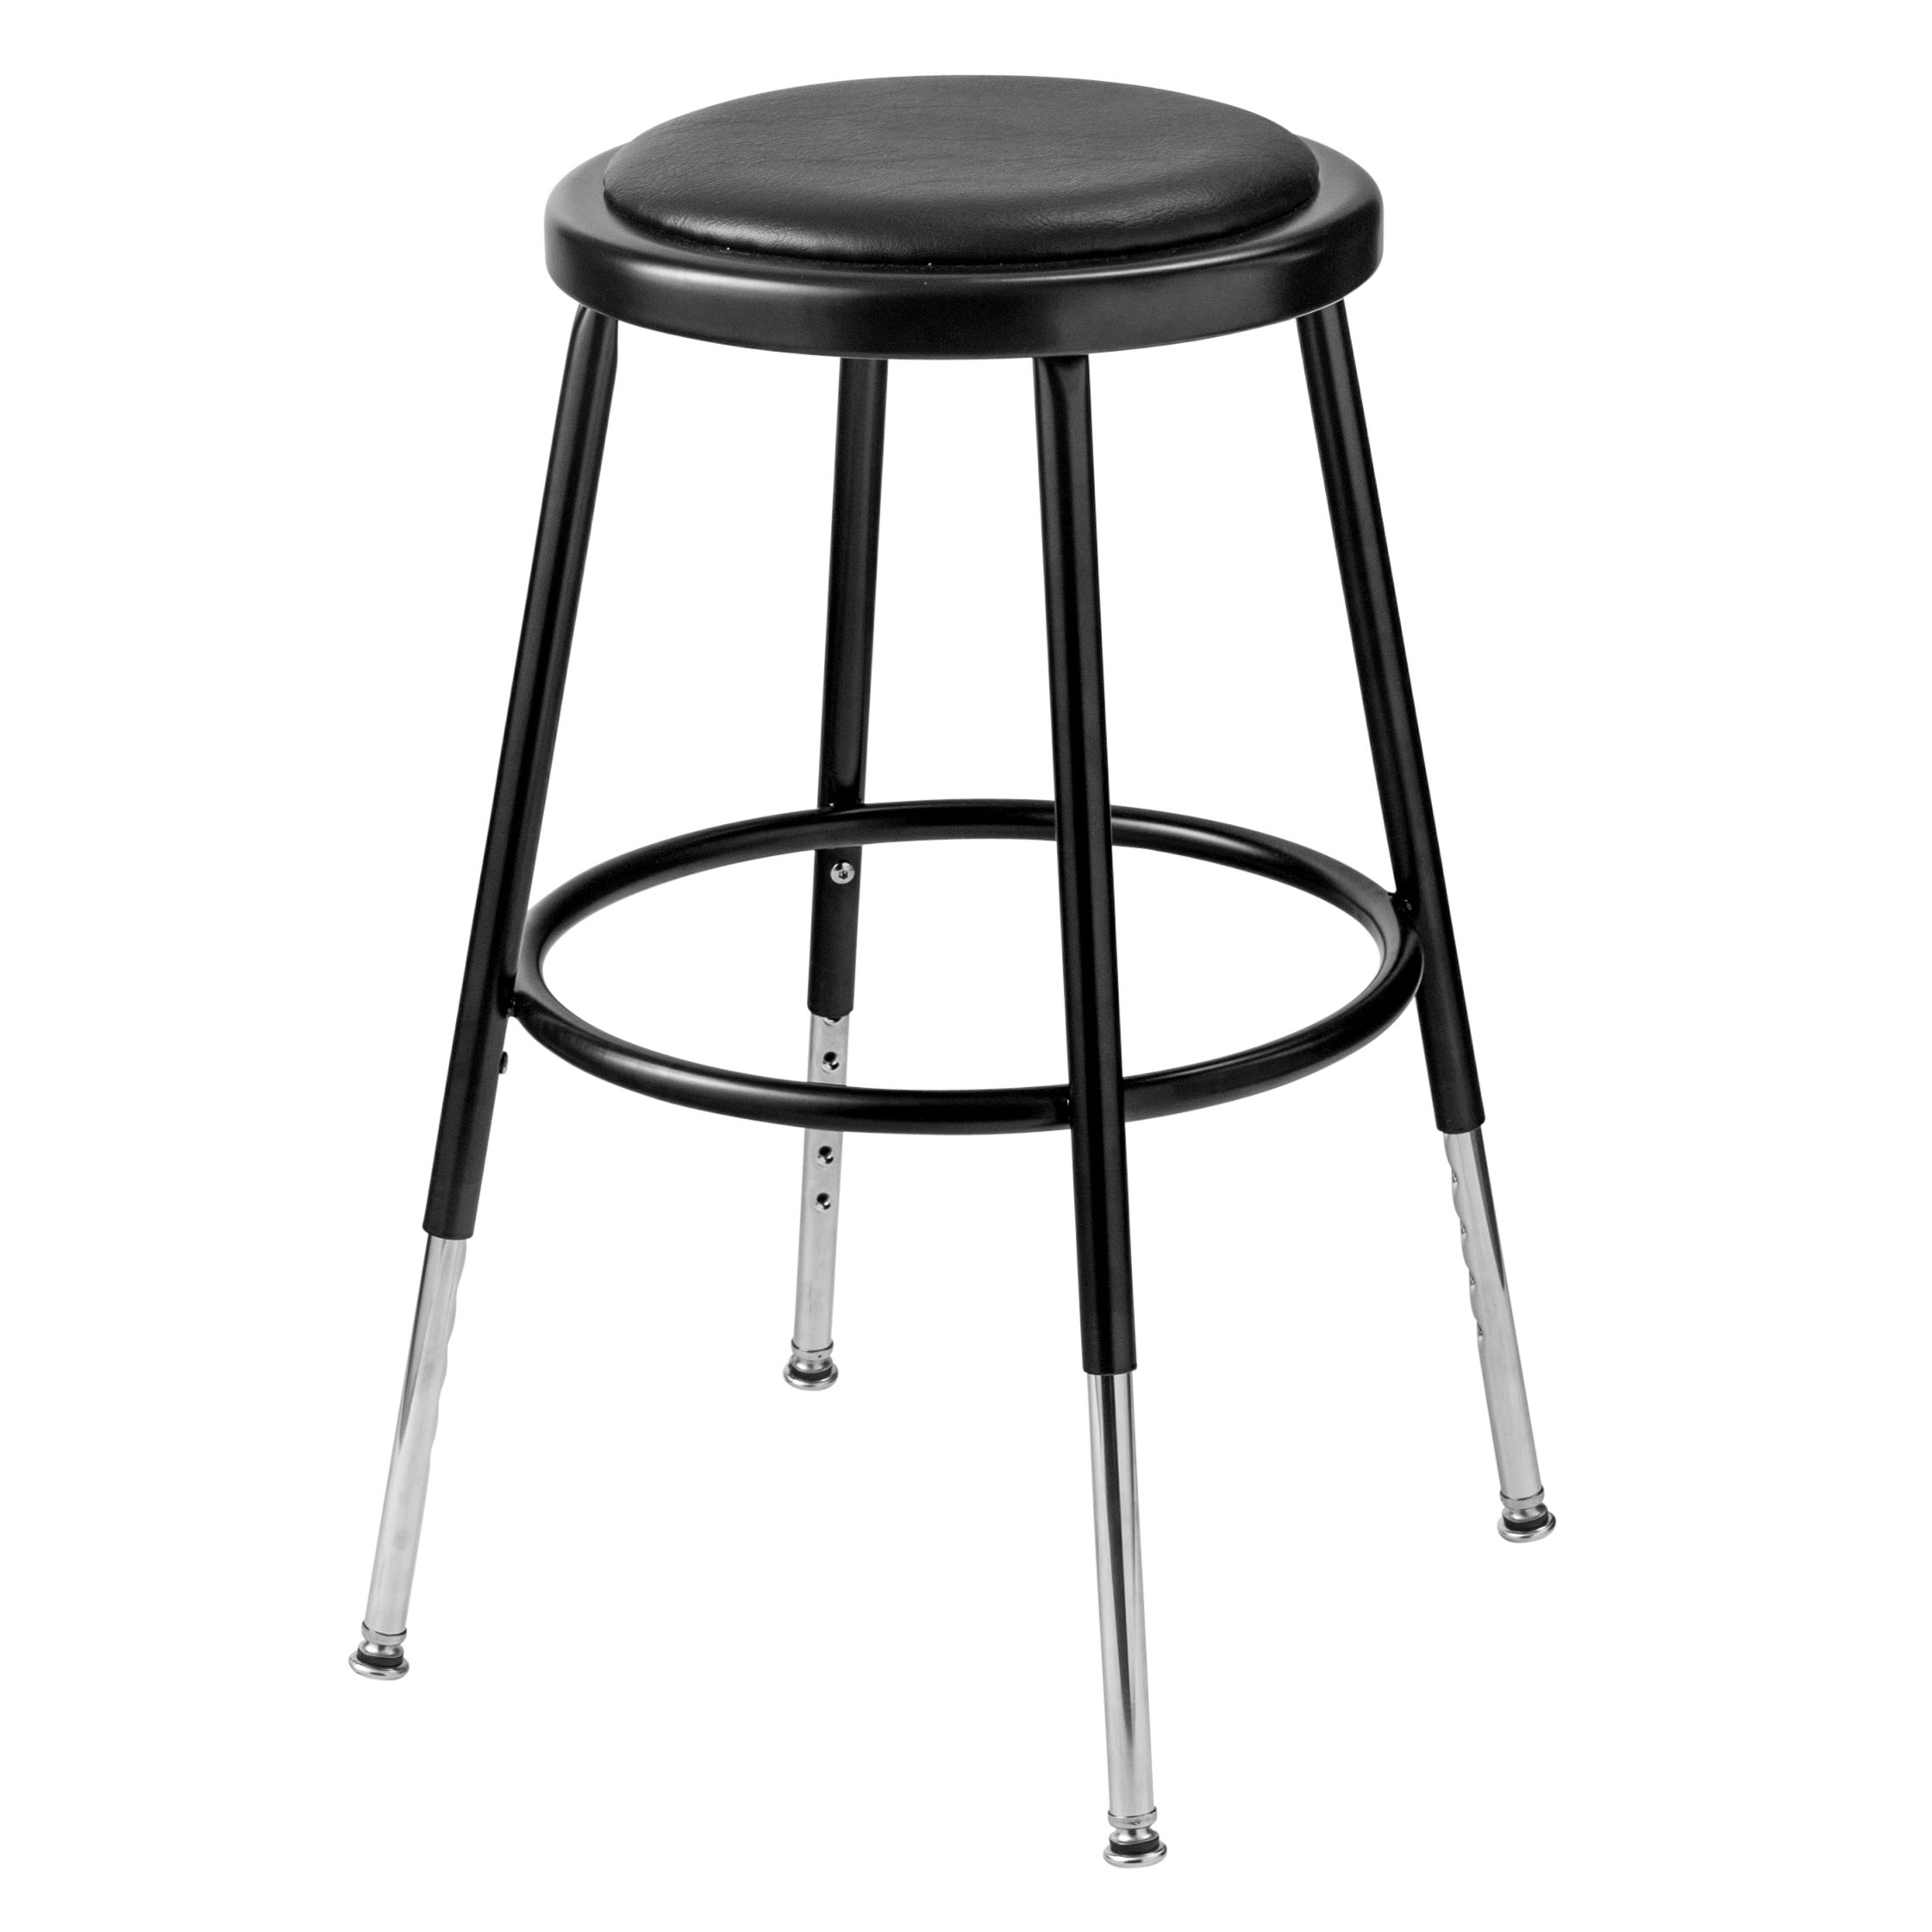 Peachy Black Vinyl Adjustable Height Padded Stool Gamerscity Chair Design For Home Gamerscityorg